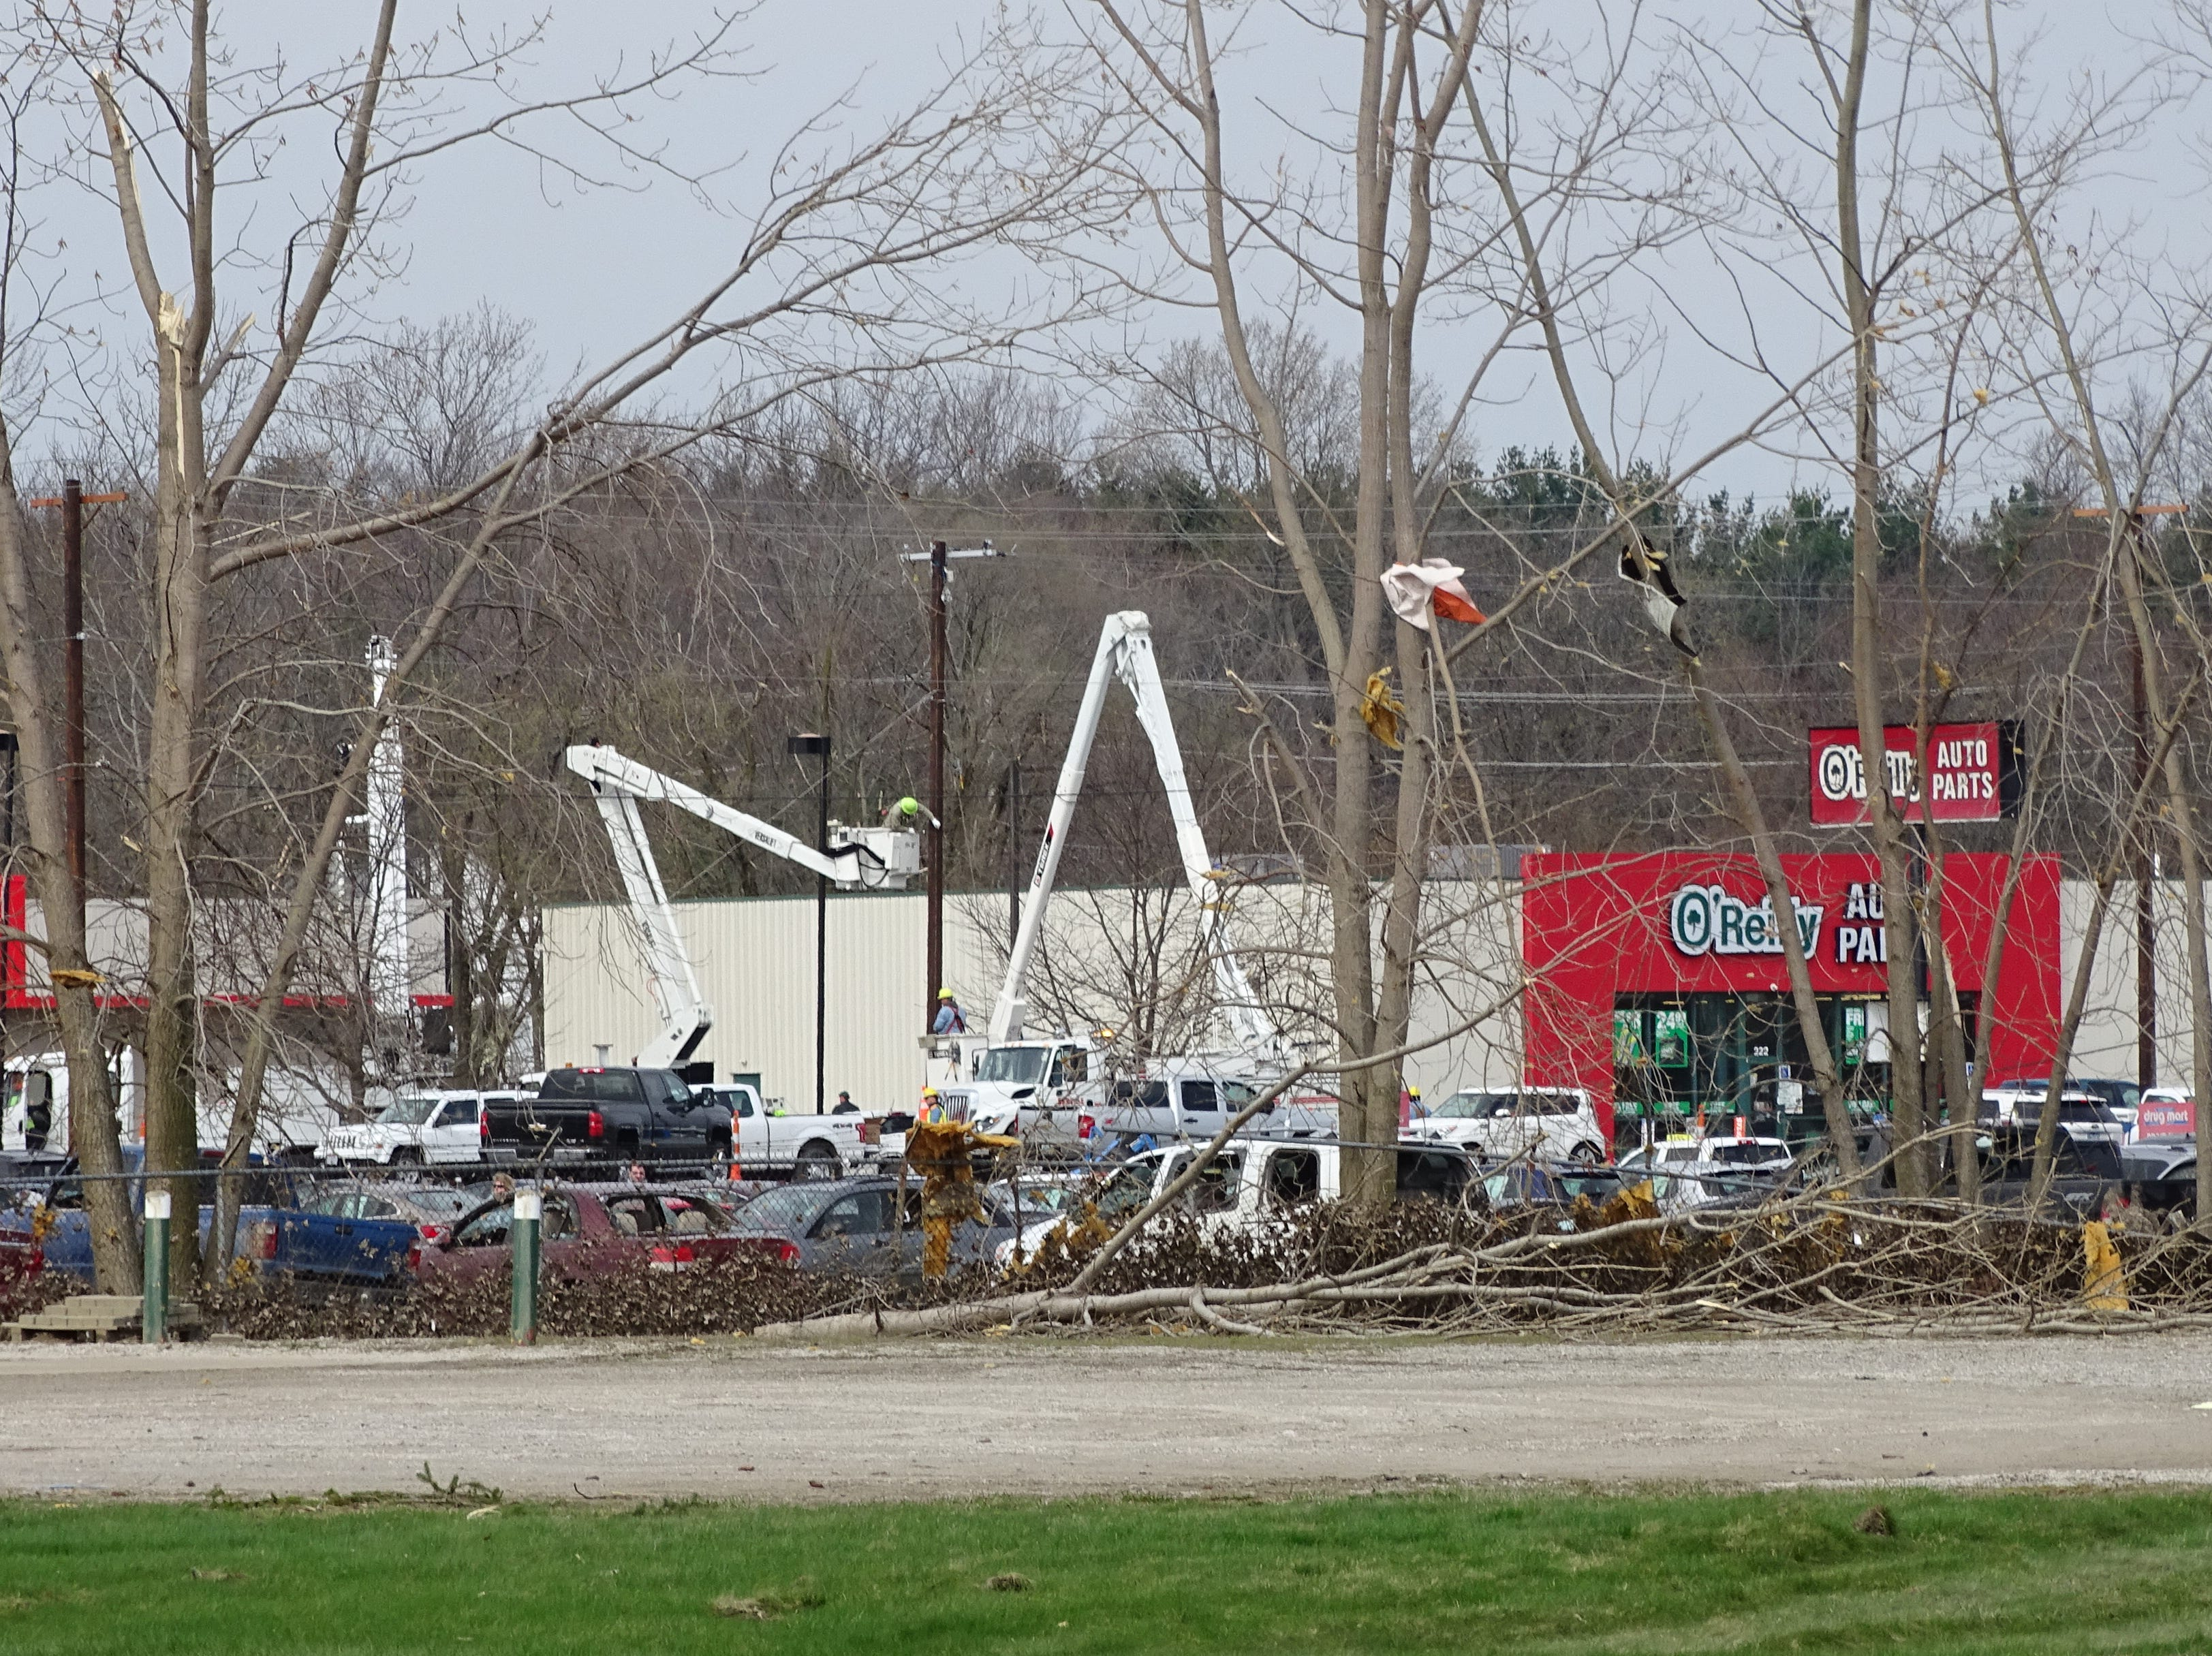 Where trees were felled by a tornado on Sunday, a forest of arm lifts sprouted on Tuesday as cleanup continues in Shelby.